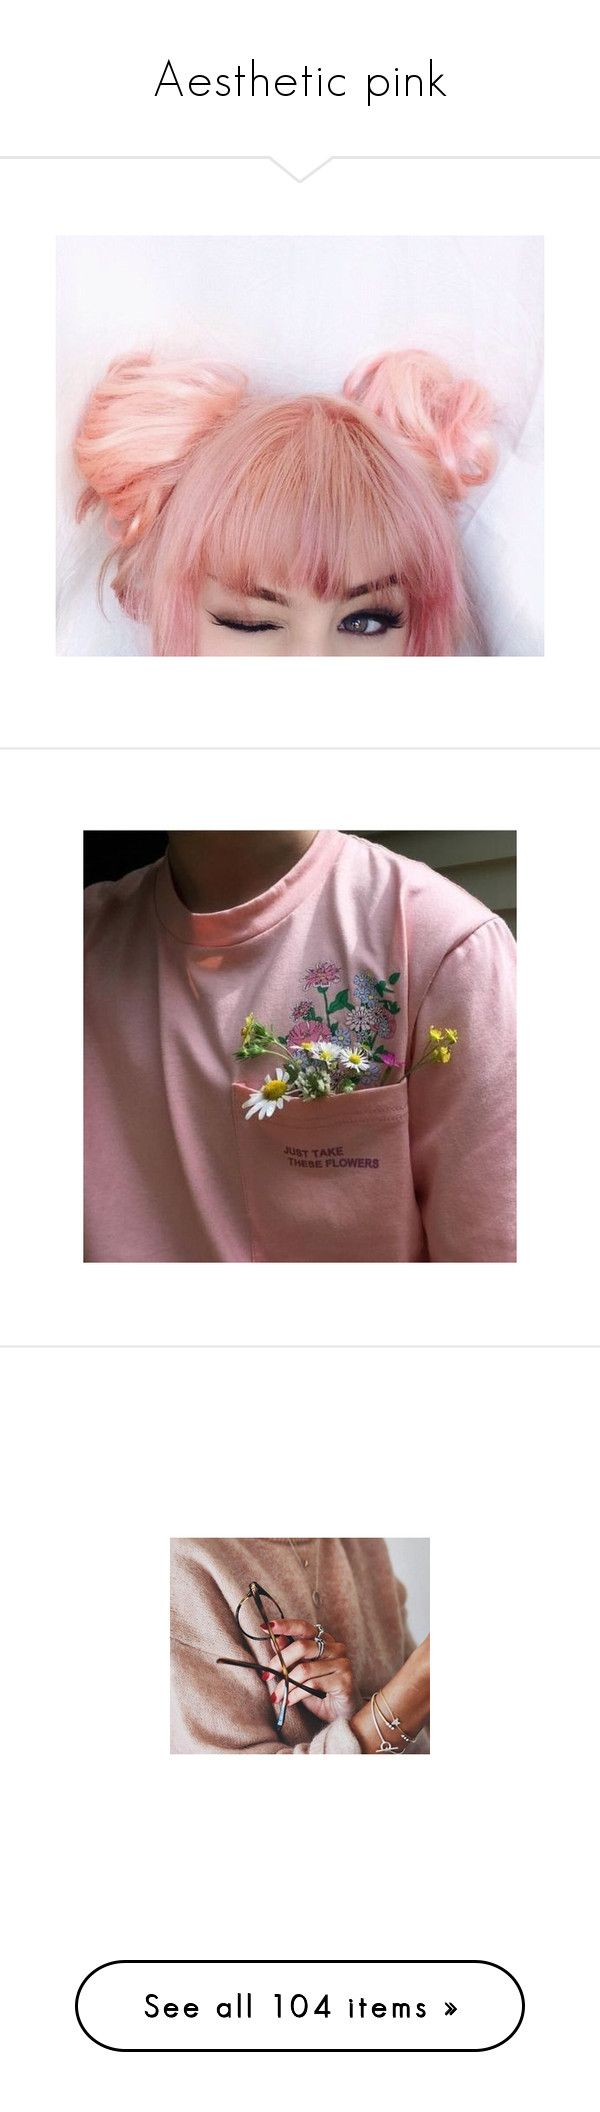 """""""Aesthetic pink"""" by still-into-malik ❤ liked on Polyvore featuring pictures, aesthetic, backgrounds, icon, pictures - pink, filler, accessories, hair accessories, pink hair accessories and image"""